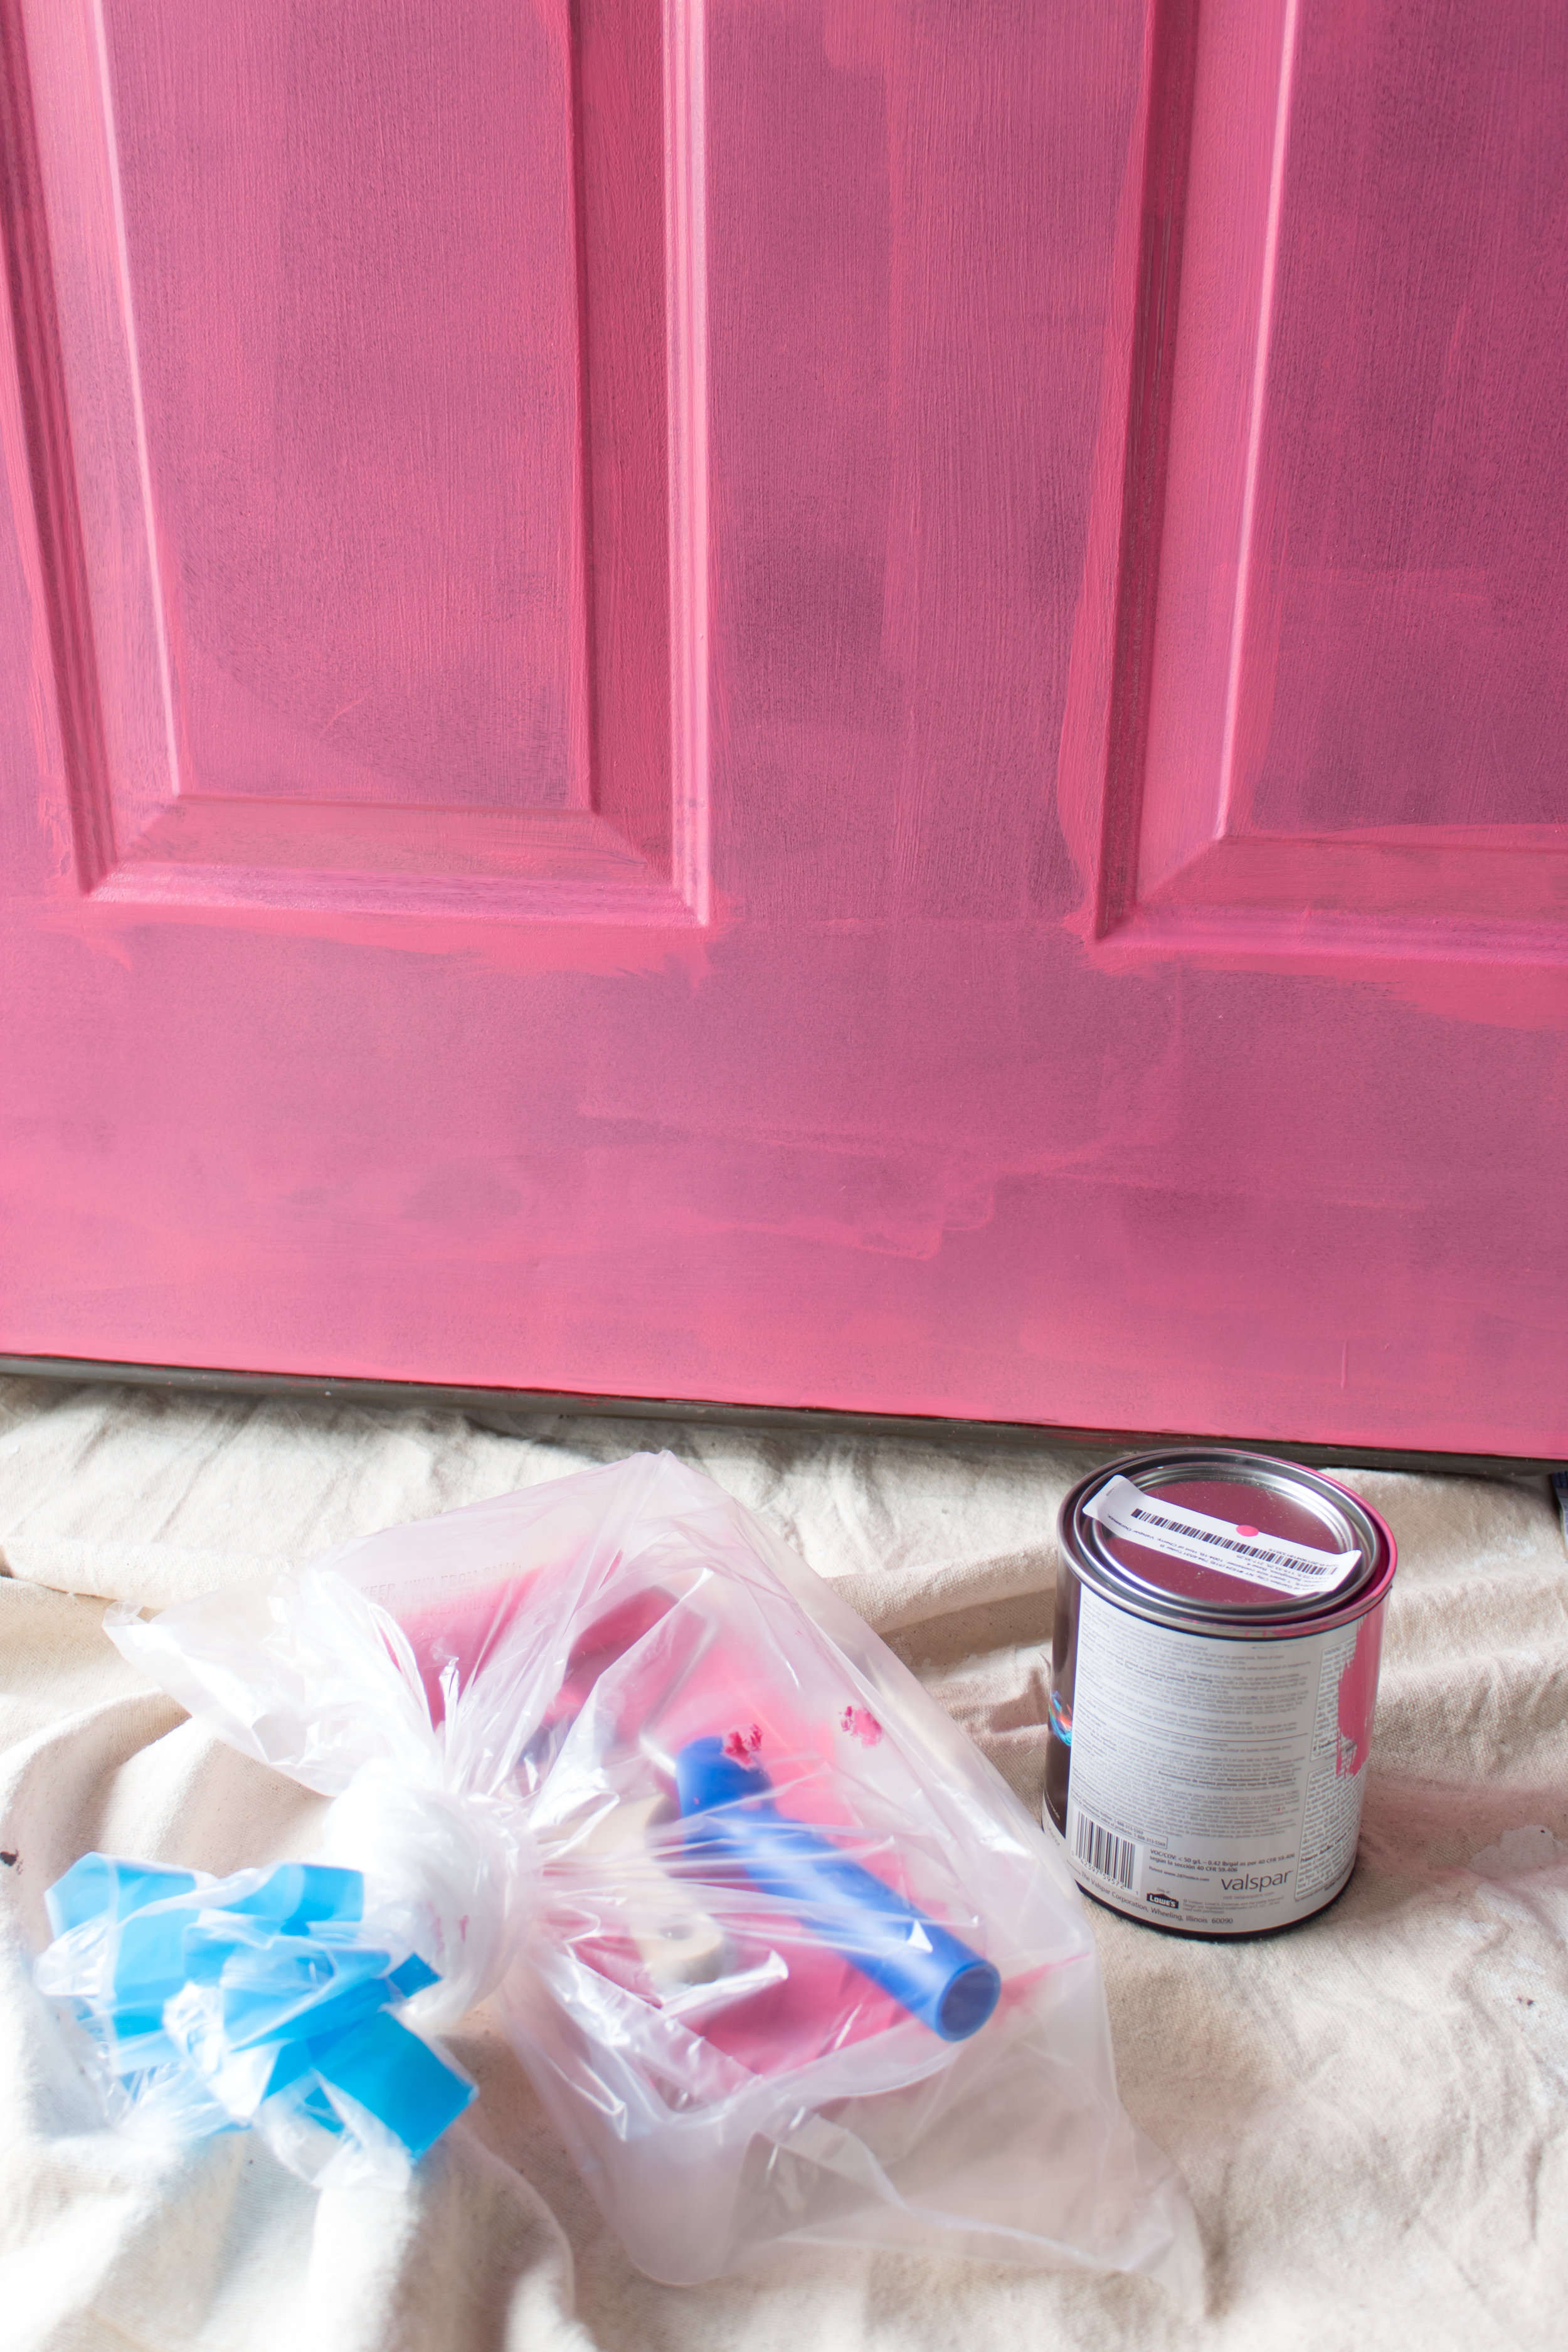 On Wednesday's we paint our door pink!! With the help of FrogTape, I was able to paint my door without having to remove the hardware. It was easy peasy lemon squeezy, and left such crisp clean lines! Head to the blog for all the details so you can give your front door a facelift for spring! #frontdoormakeover #frontdoorcolors #pinkdoor